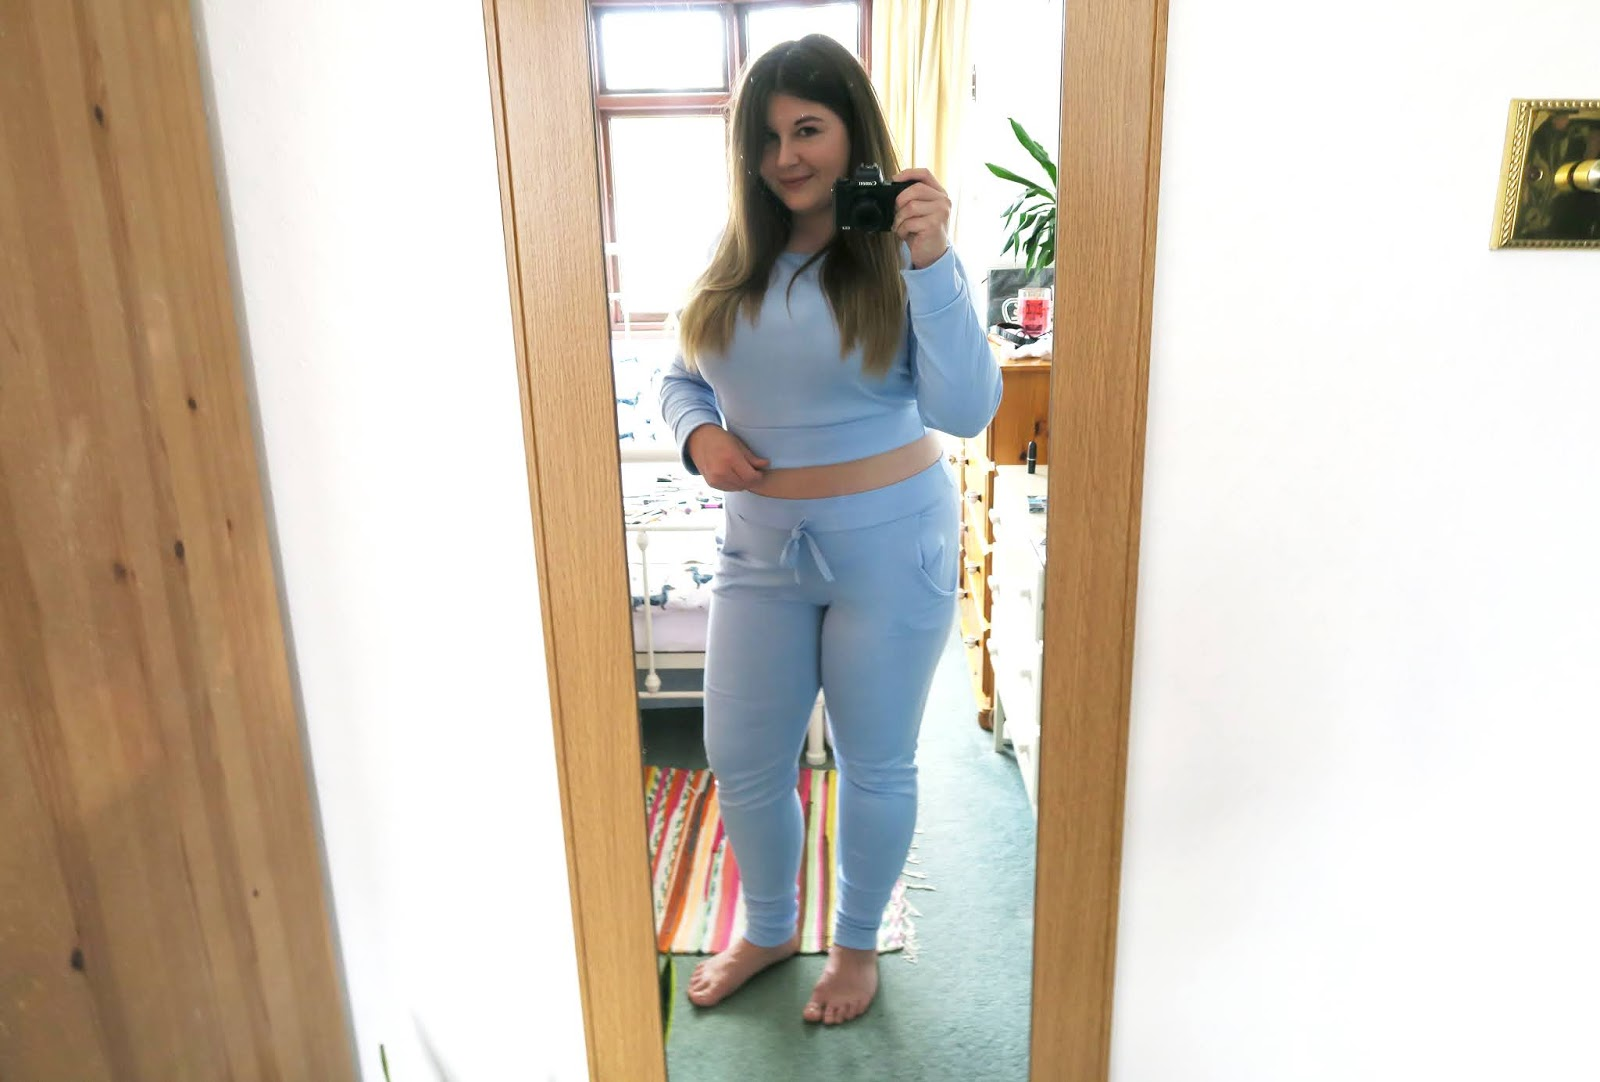 Grace can be seen posing in a full length mirror wearing a baby blue loungewear set. Her stomach is on show.